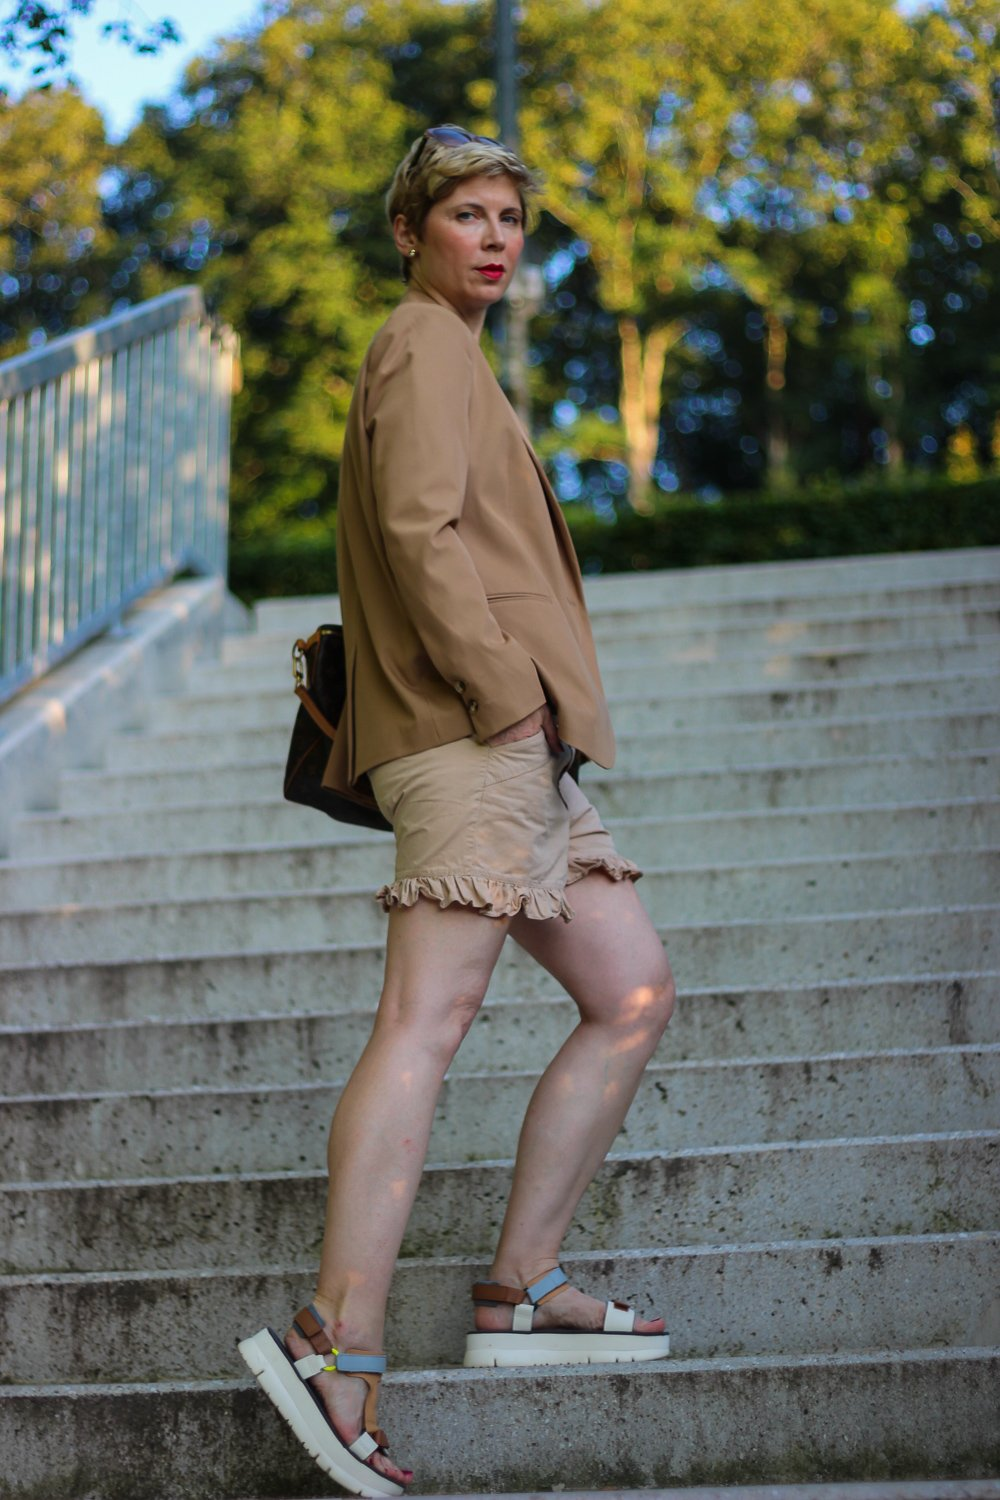 conny doll lifestyle: Sommerlook mit Blazer, bequeme Sandalen, Ton in Ton